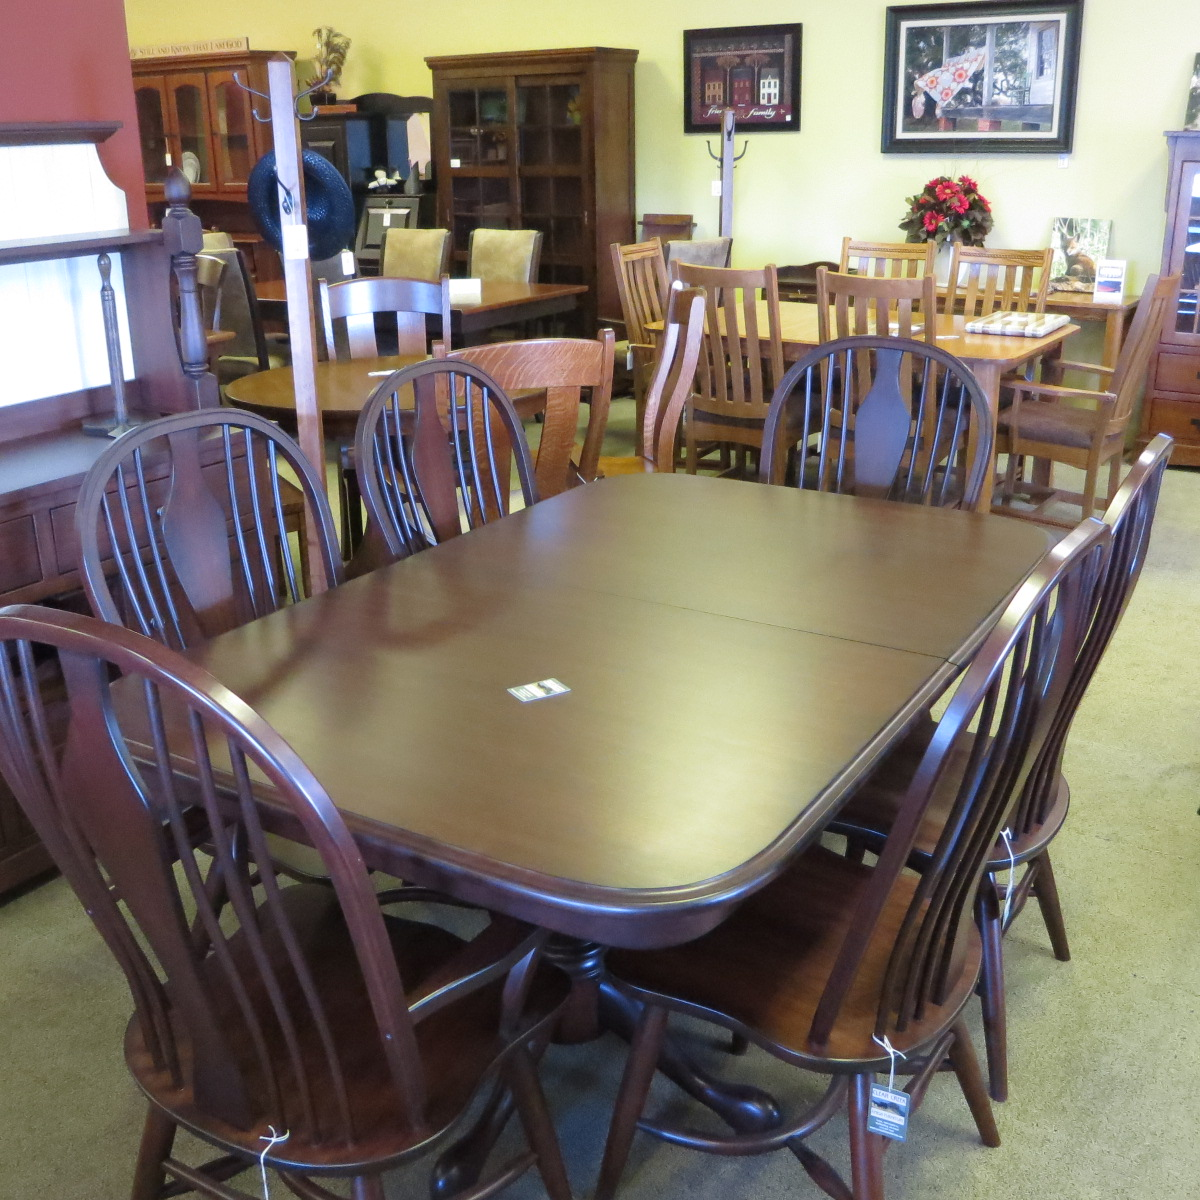 Double tulip pedestal base 42 x 66 with 2 leaves, 4 side chairs and 2 arm chairs in cherry